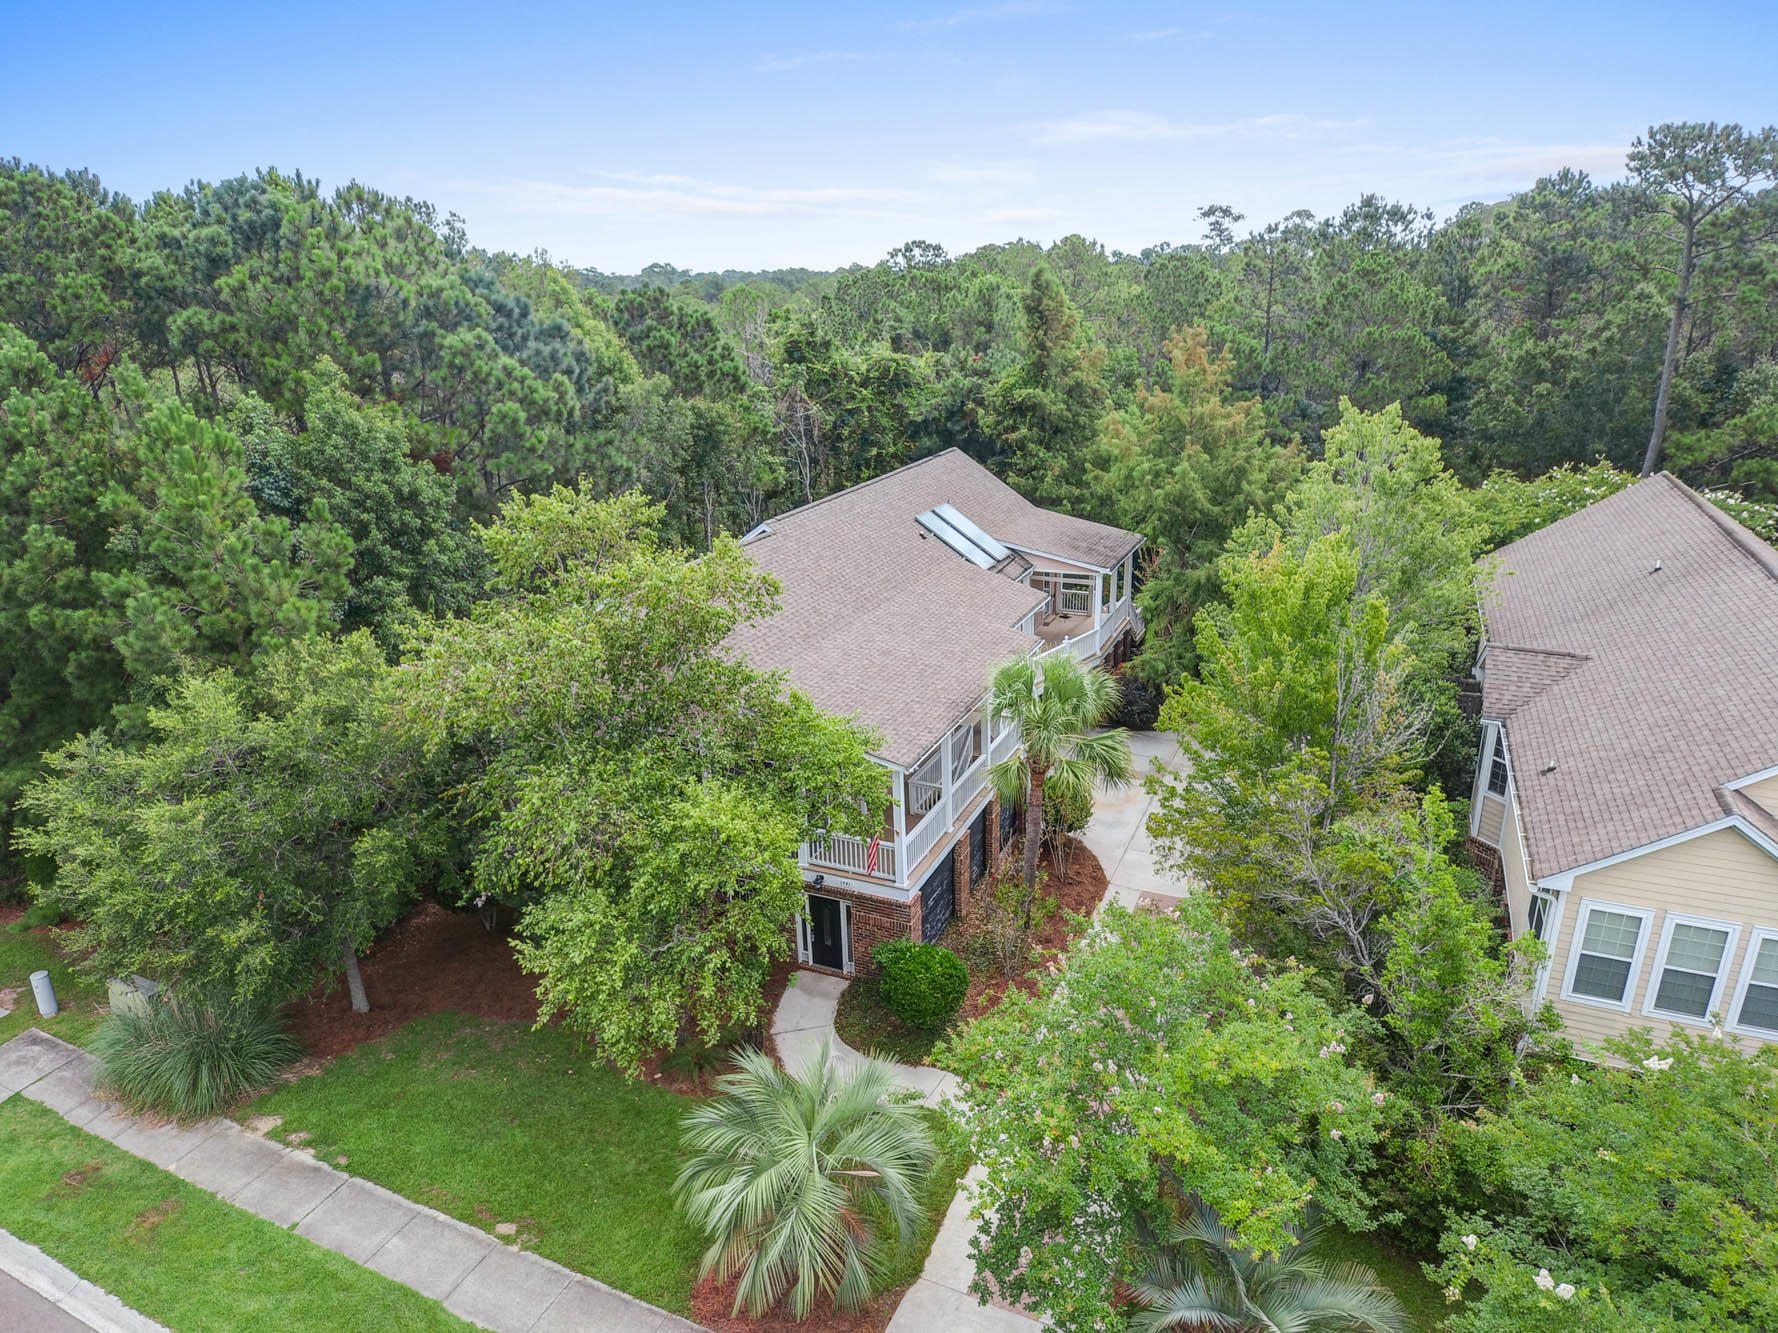 Rivertowne Country Club Homes For Sale - 1741 Rivertowne Country Club, Mount Pleasant, SC - 14